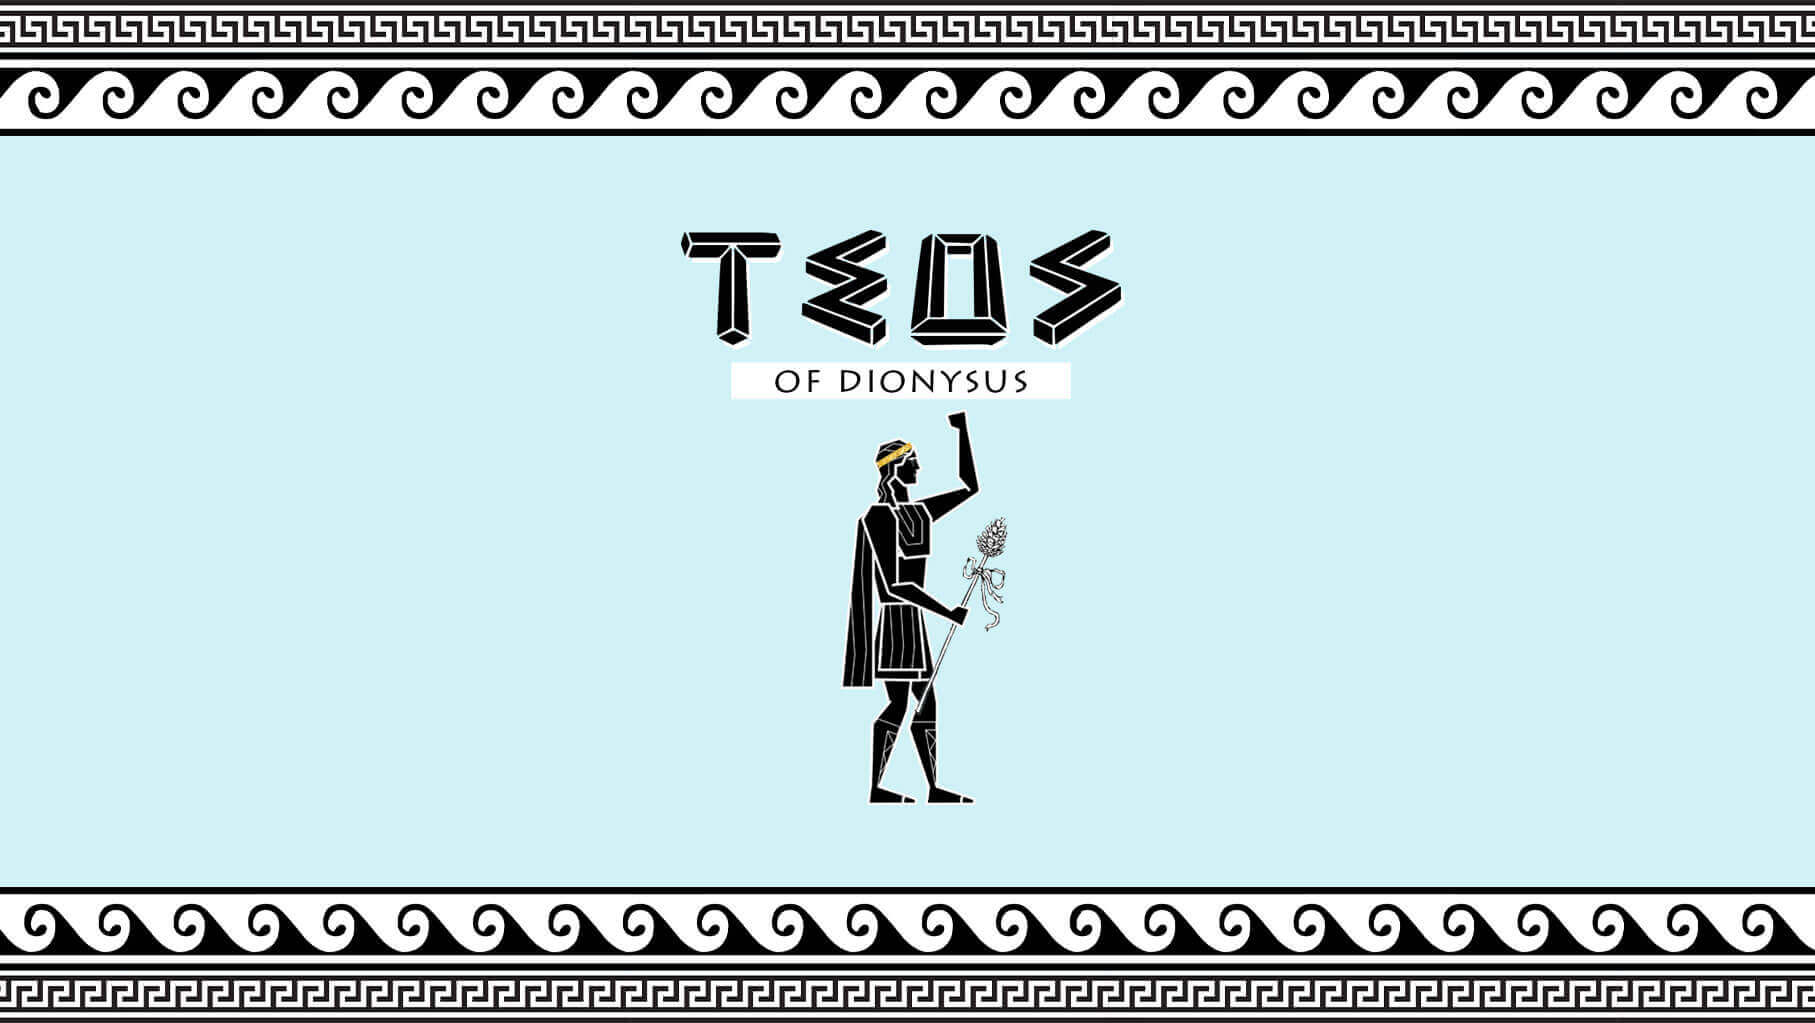 Teos of dionysos